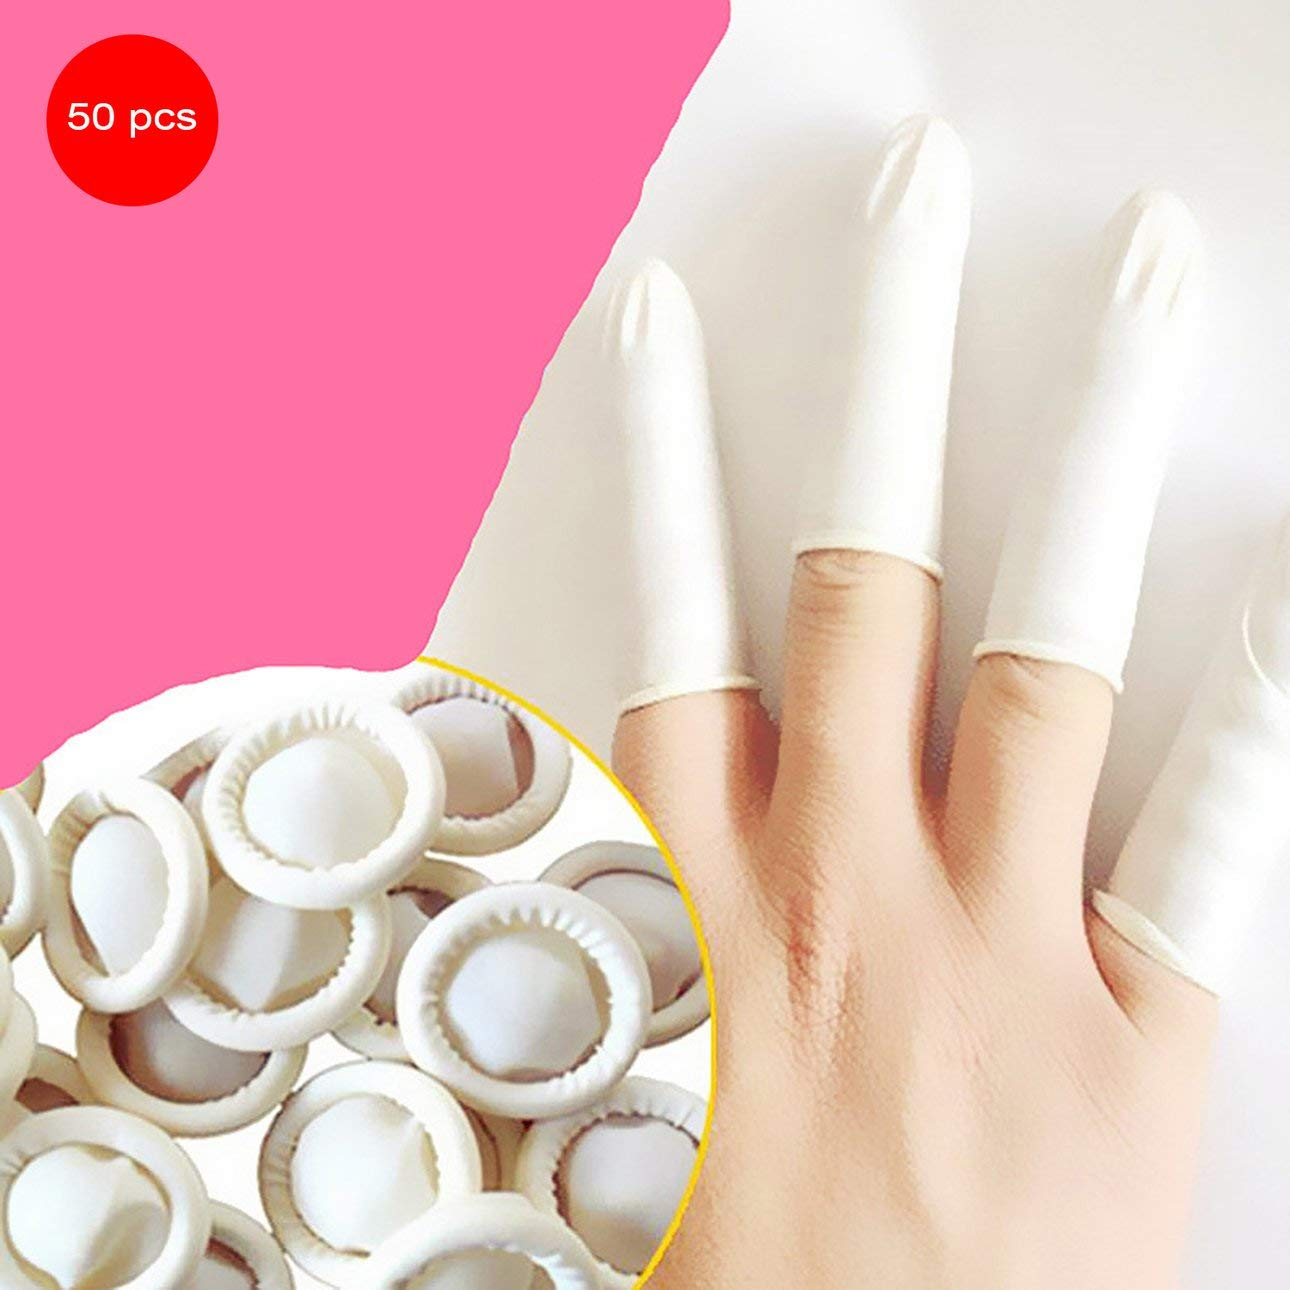 Liobaba 50PCS/SET Natural Latex Anti-Static Finger Cots Practical Design Disposable Makeup Eyebrow Extension Gloves Tools by Liobaba (Image #6)